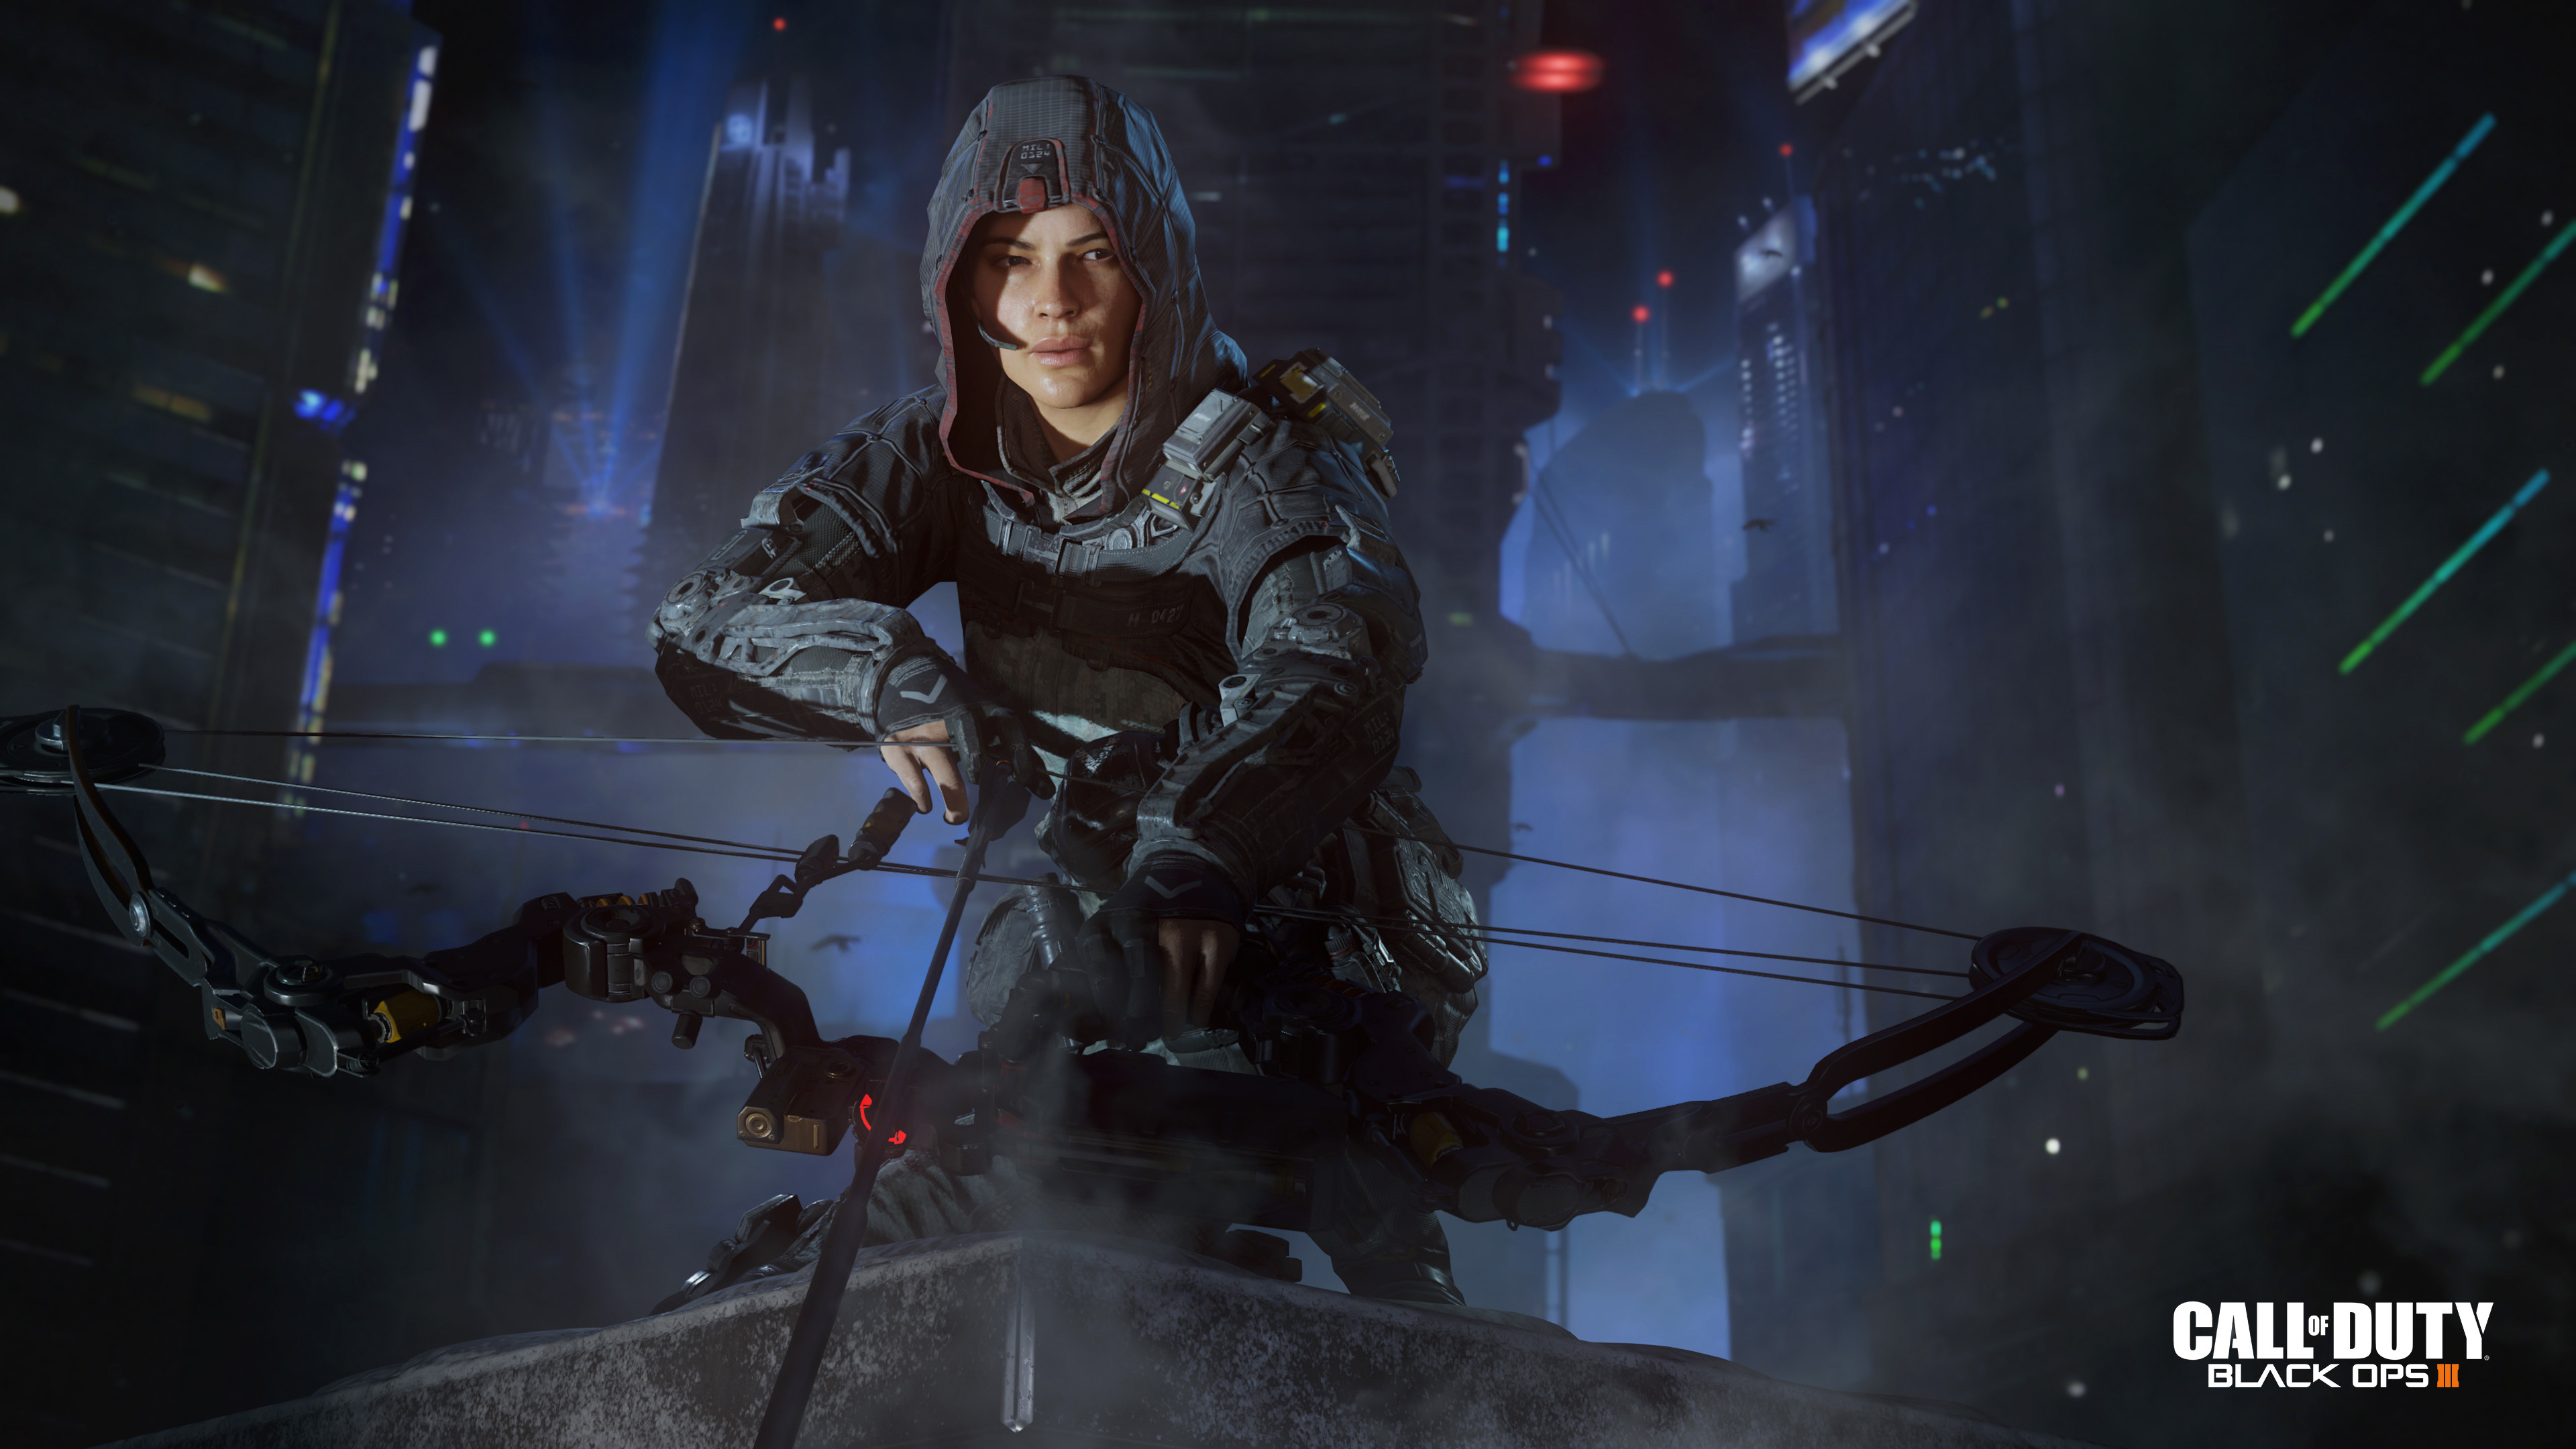 Call of Duty Black Ops 3 Specialist Outrider